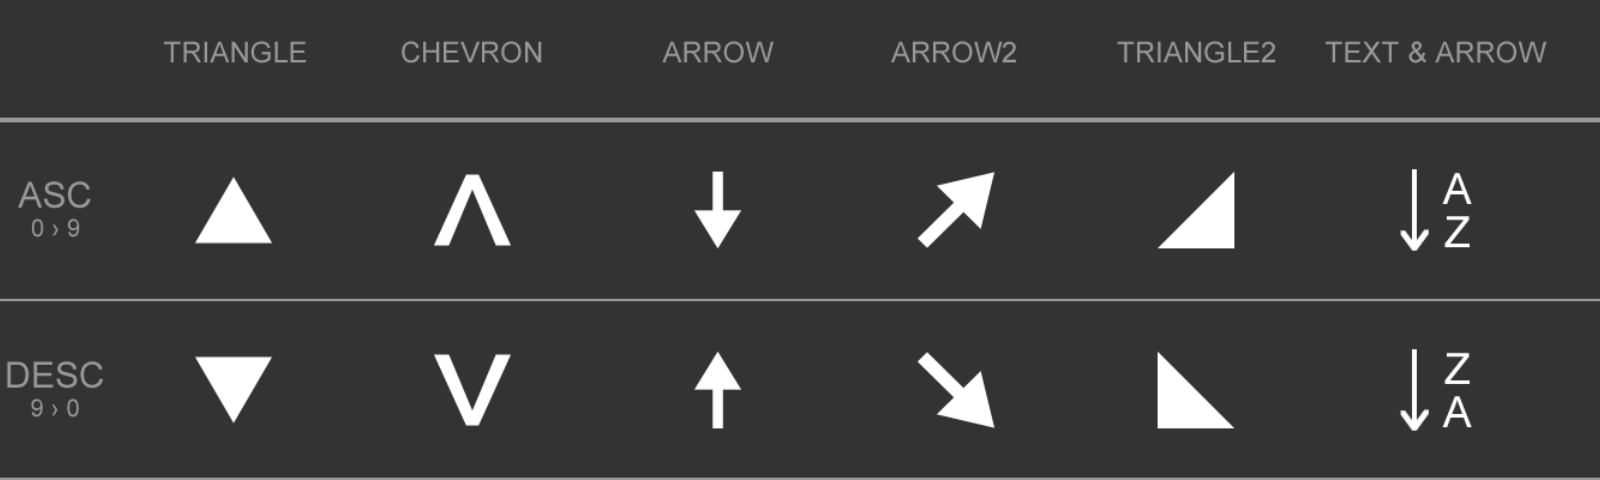 Sorting Arrow Confusion In Data Tables Hacker Noon